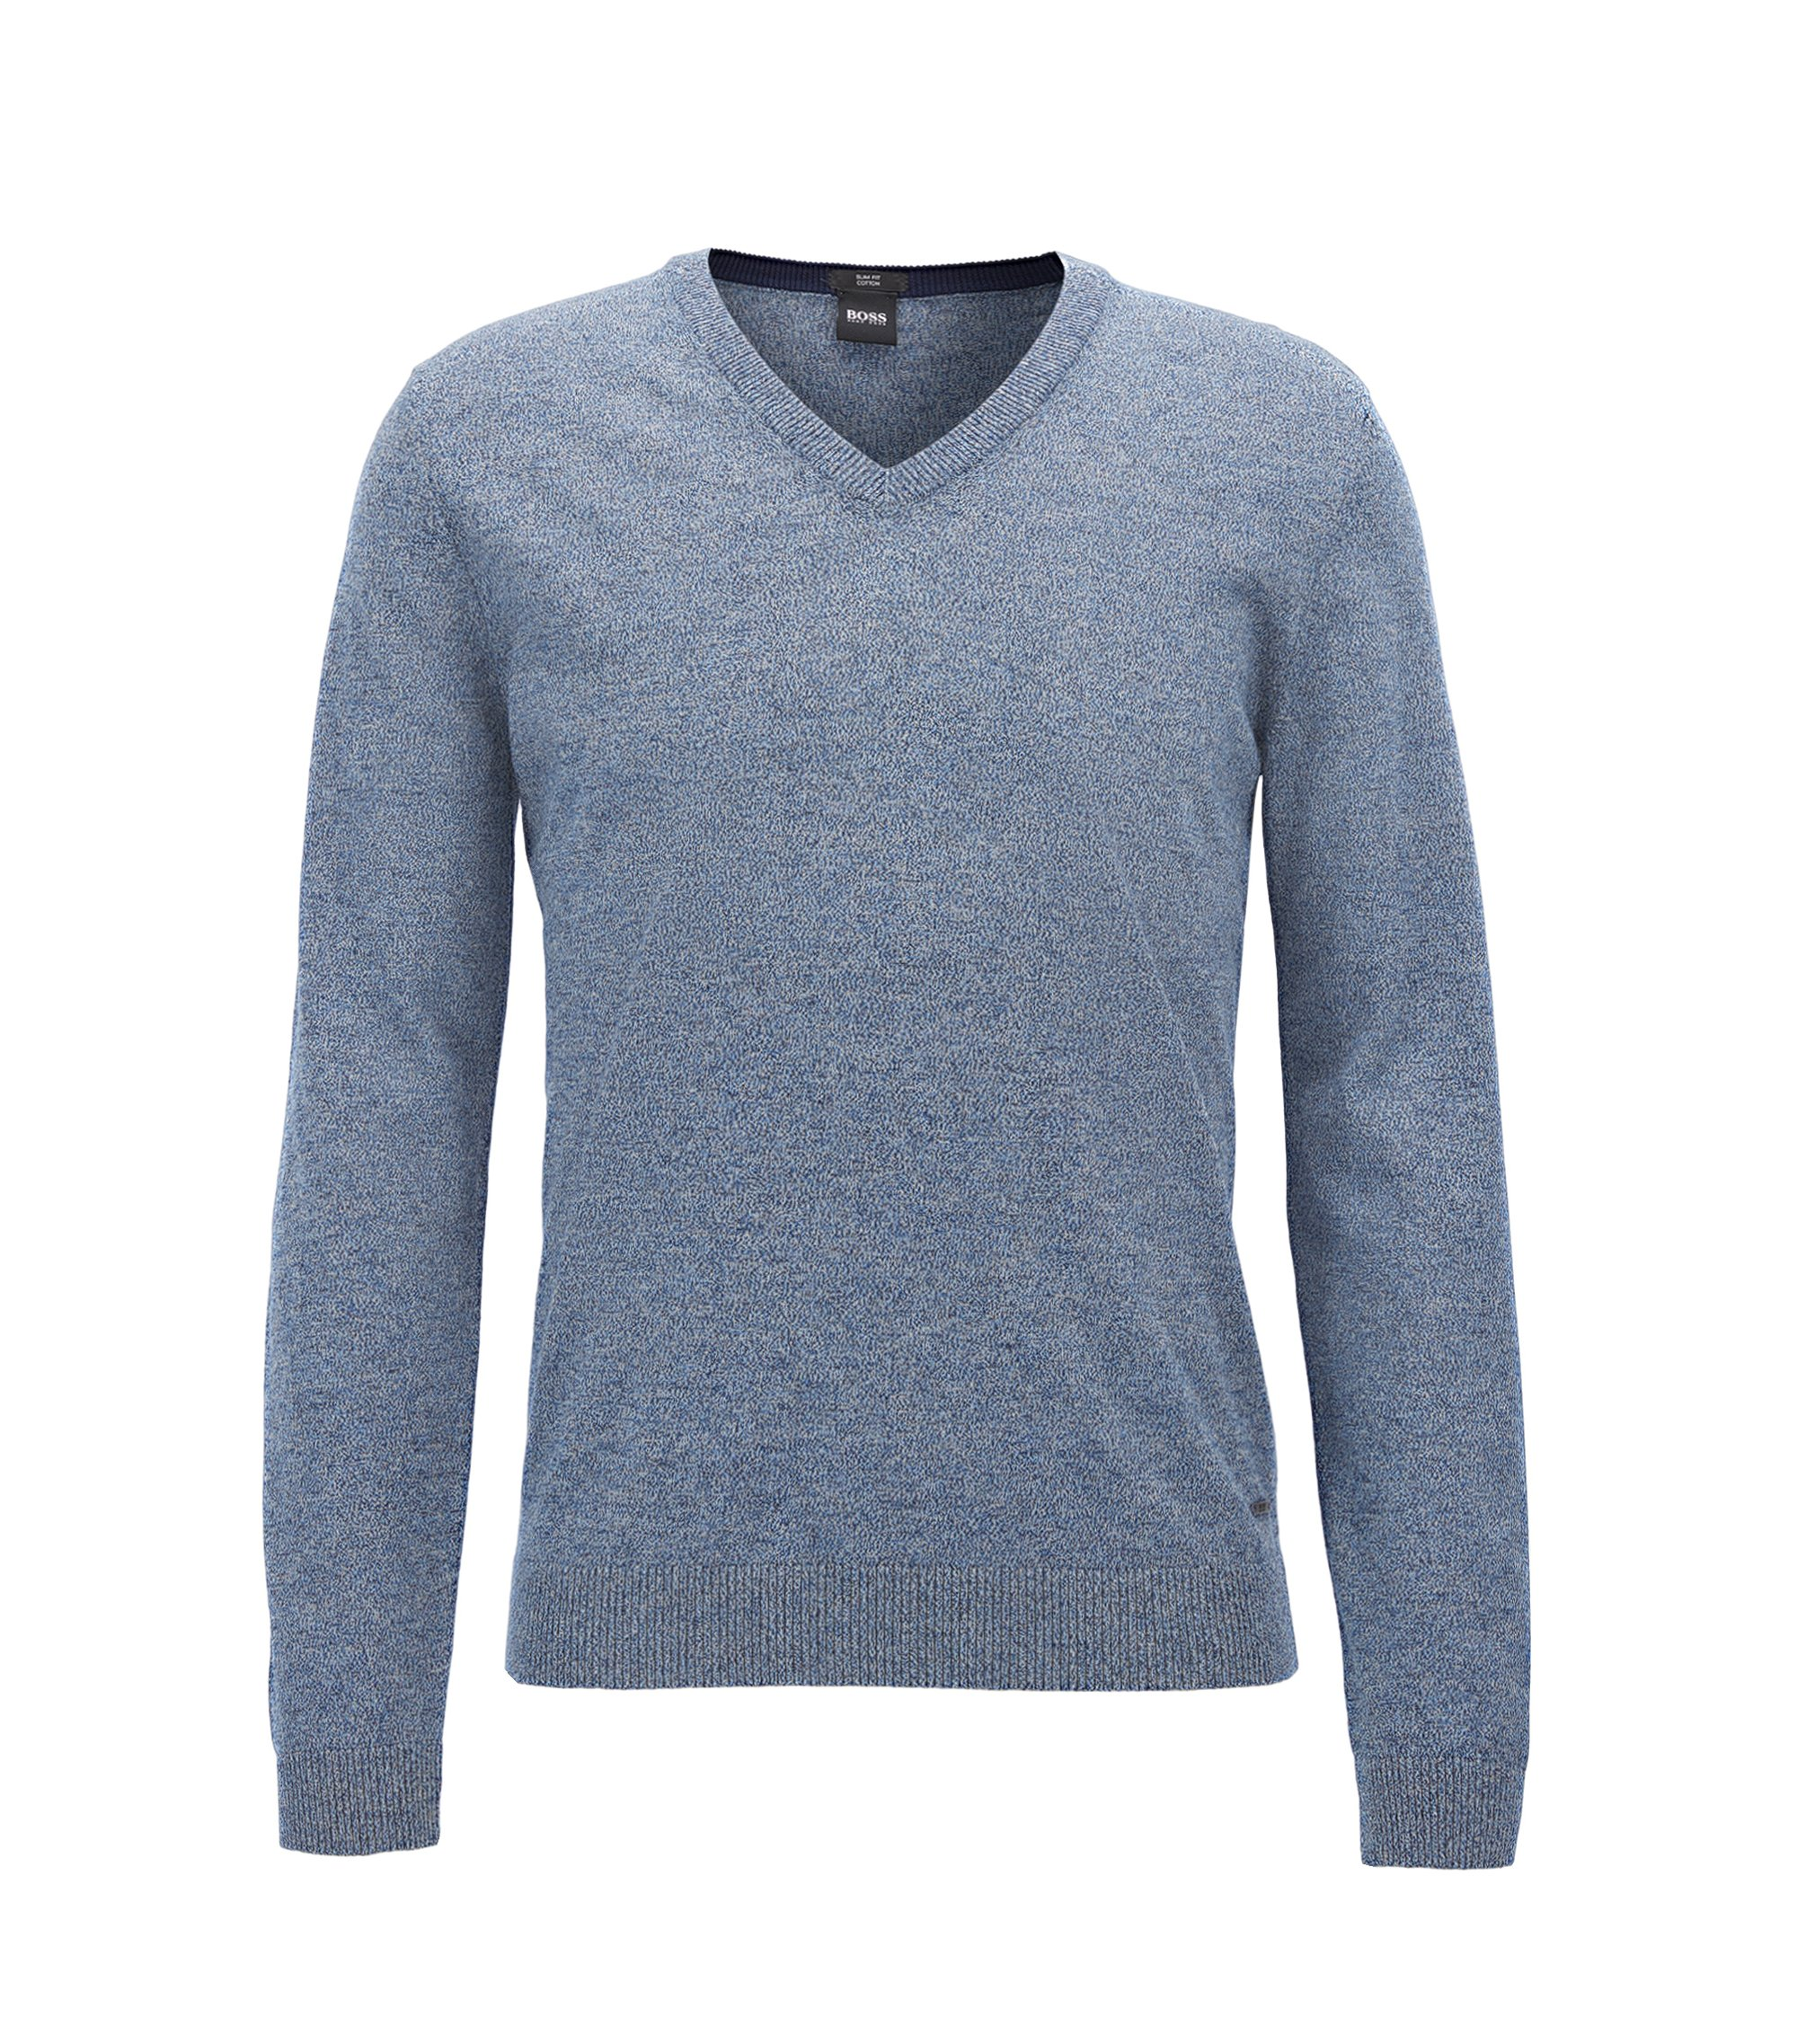 Cotton V-Neck Sweater | Fabbert D, Turquoise